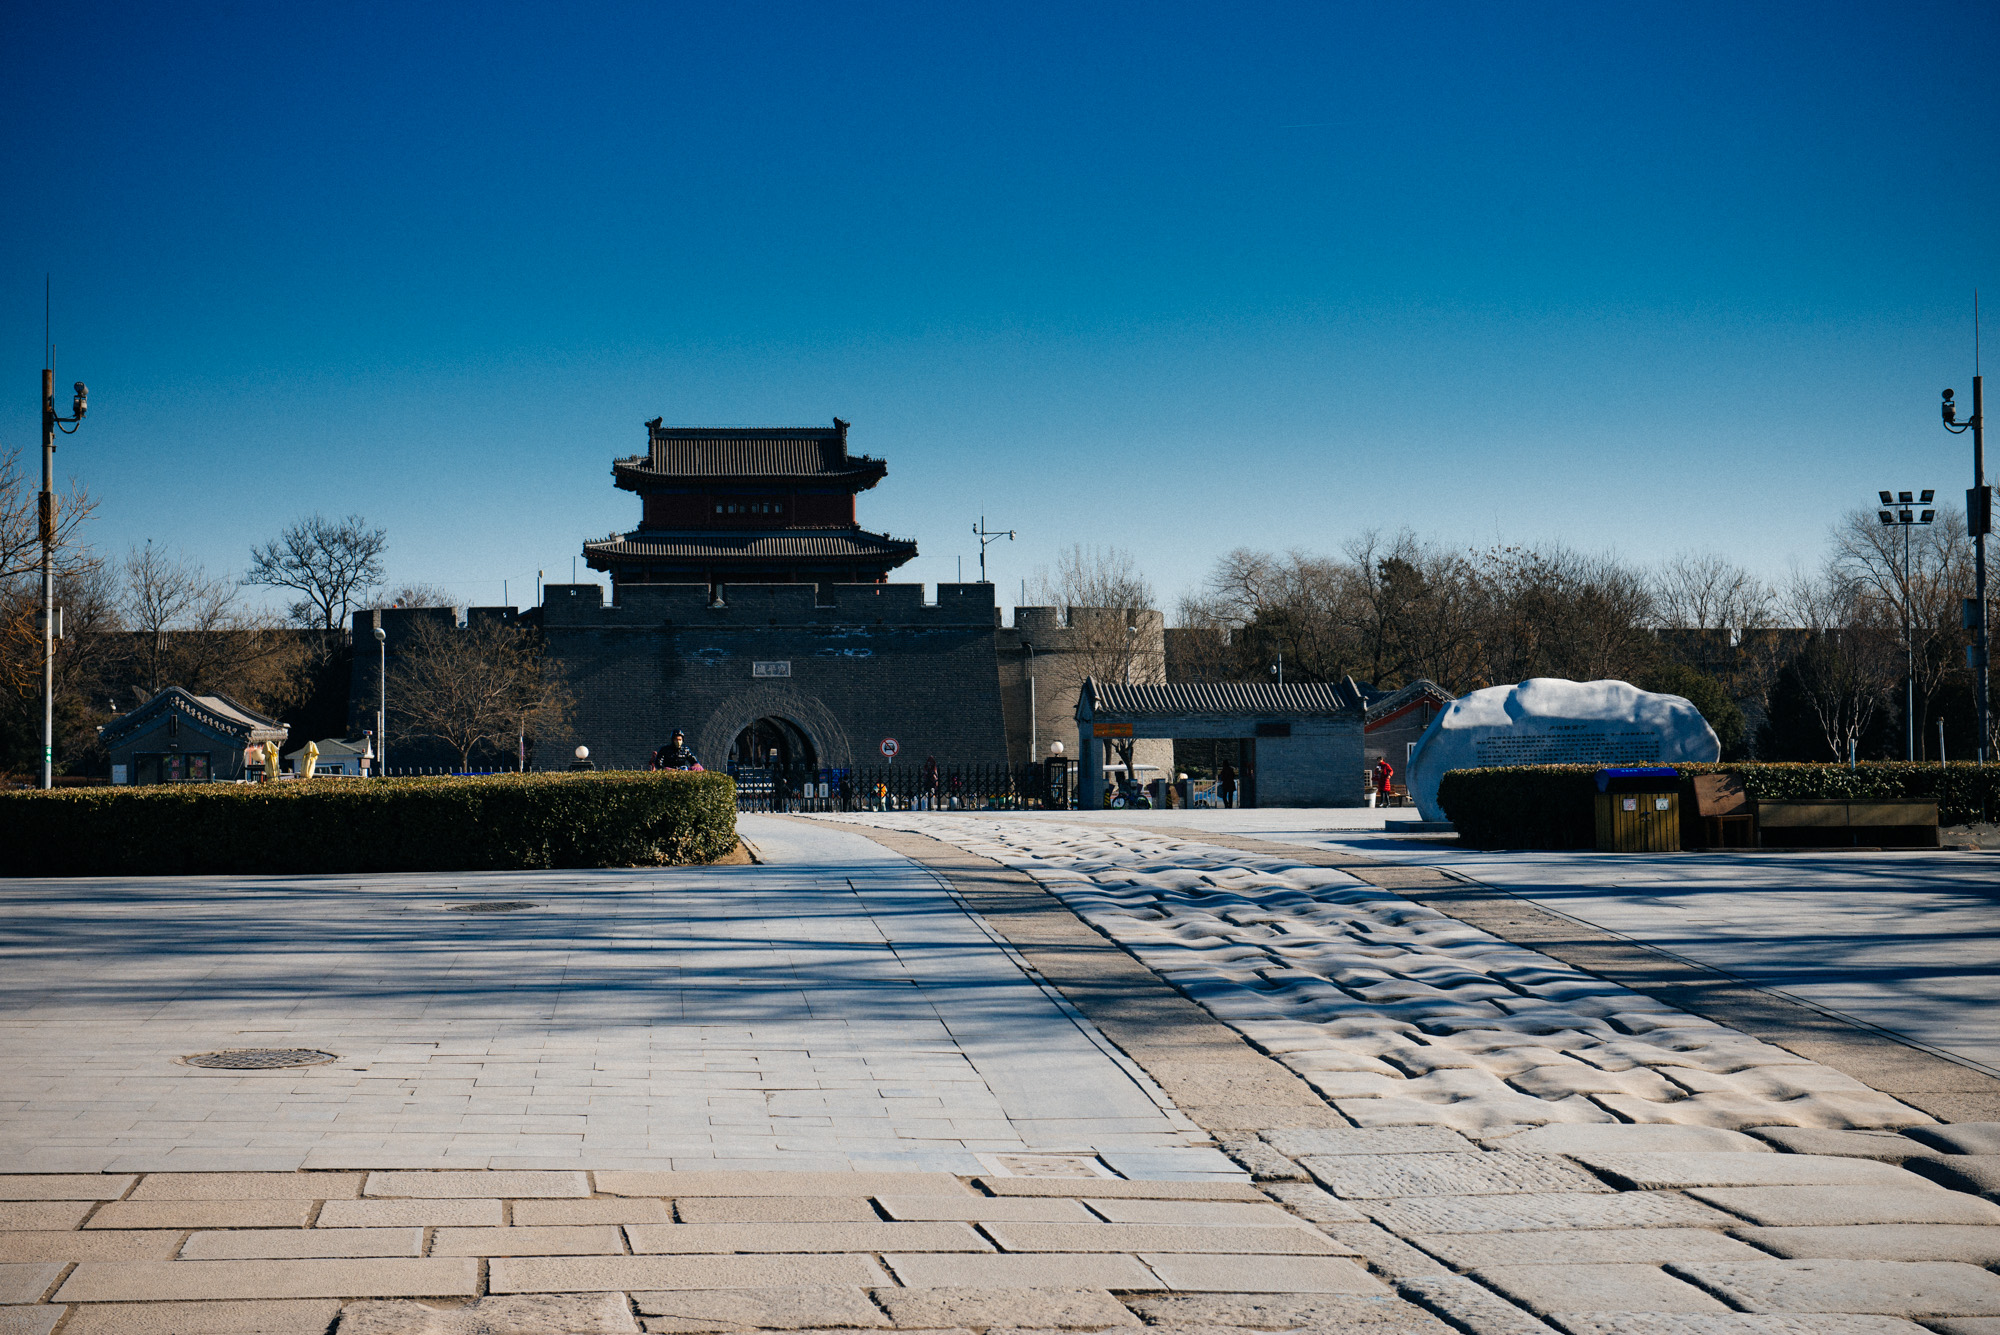 The Wanping fortress' gate leads directly to the Marco Polo Bridge.